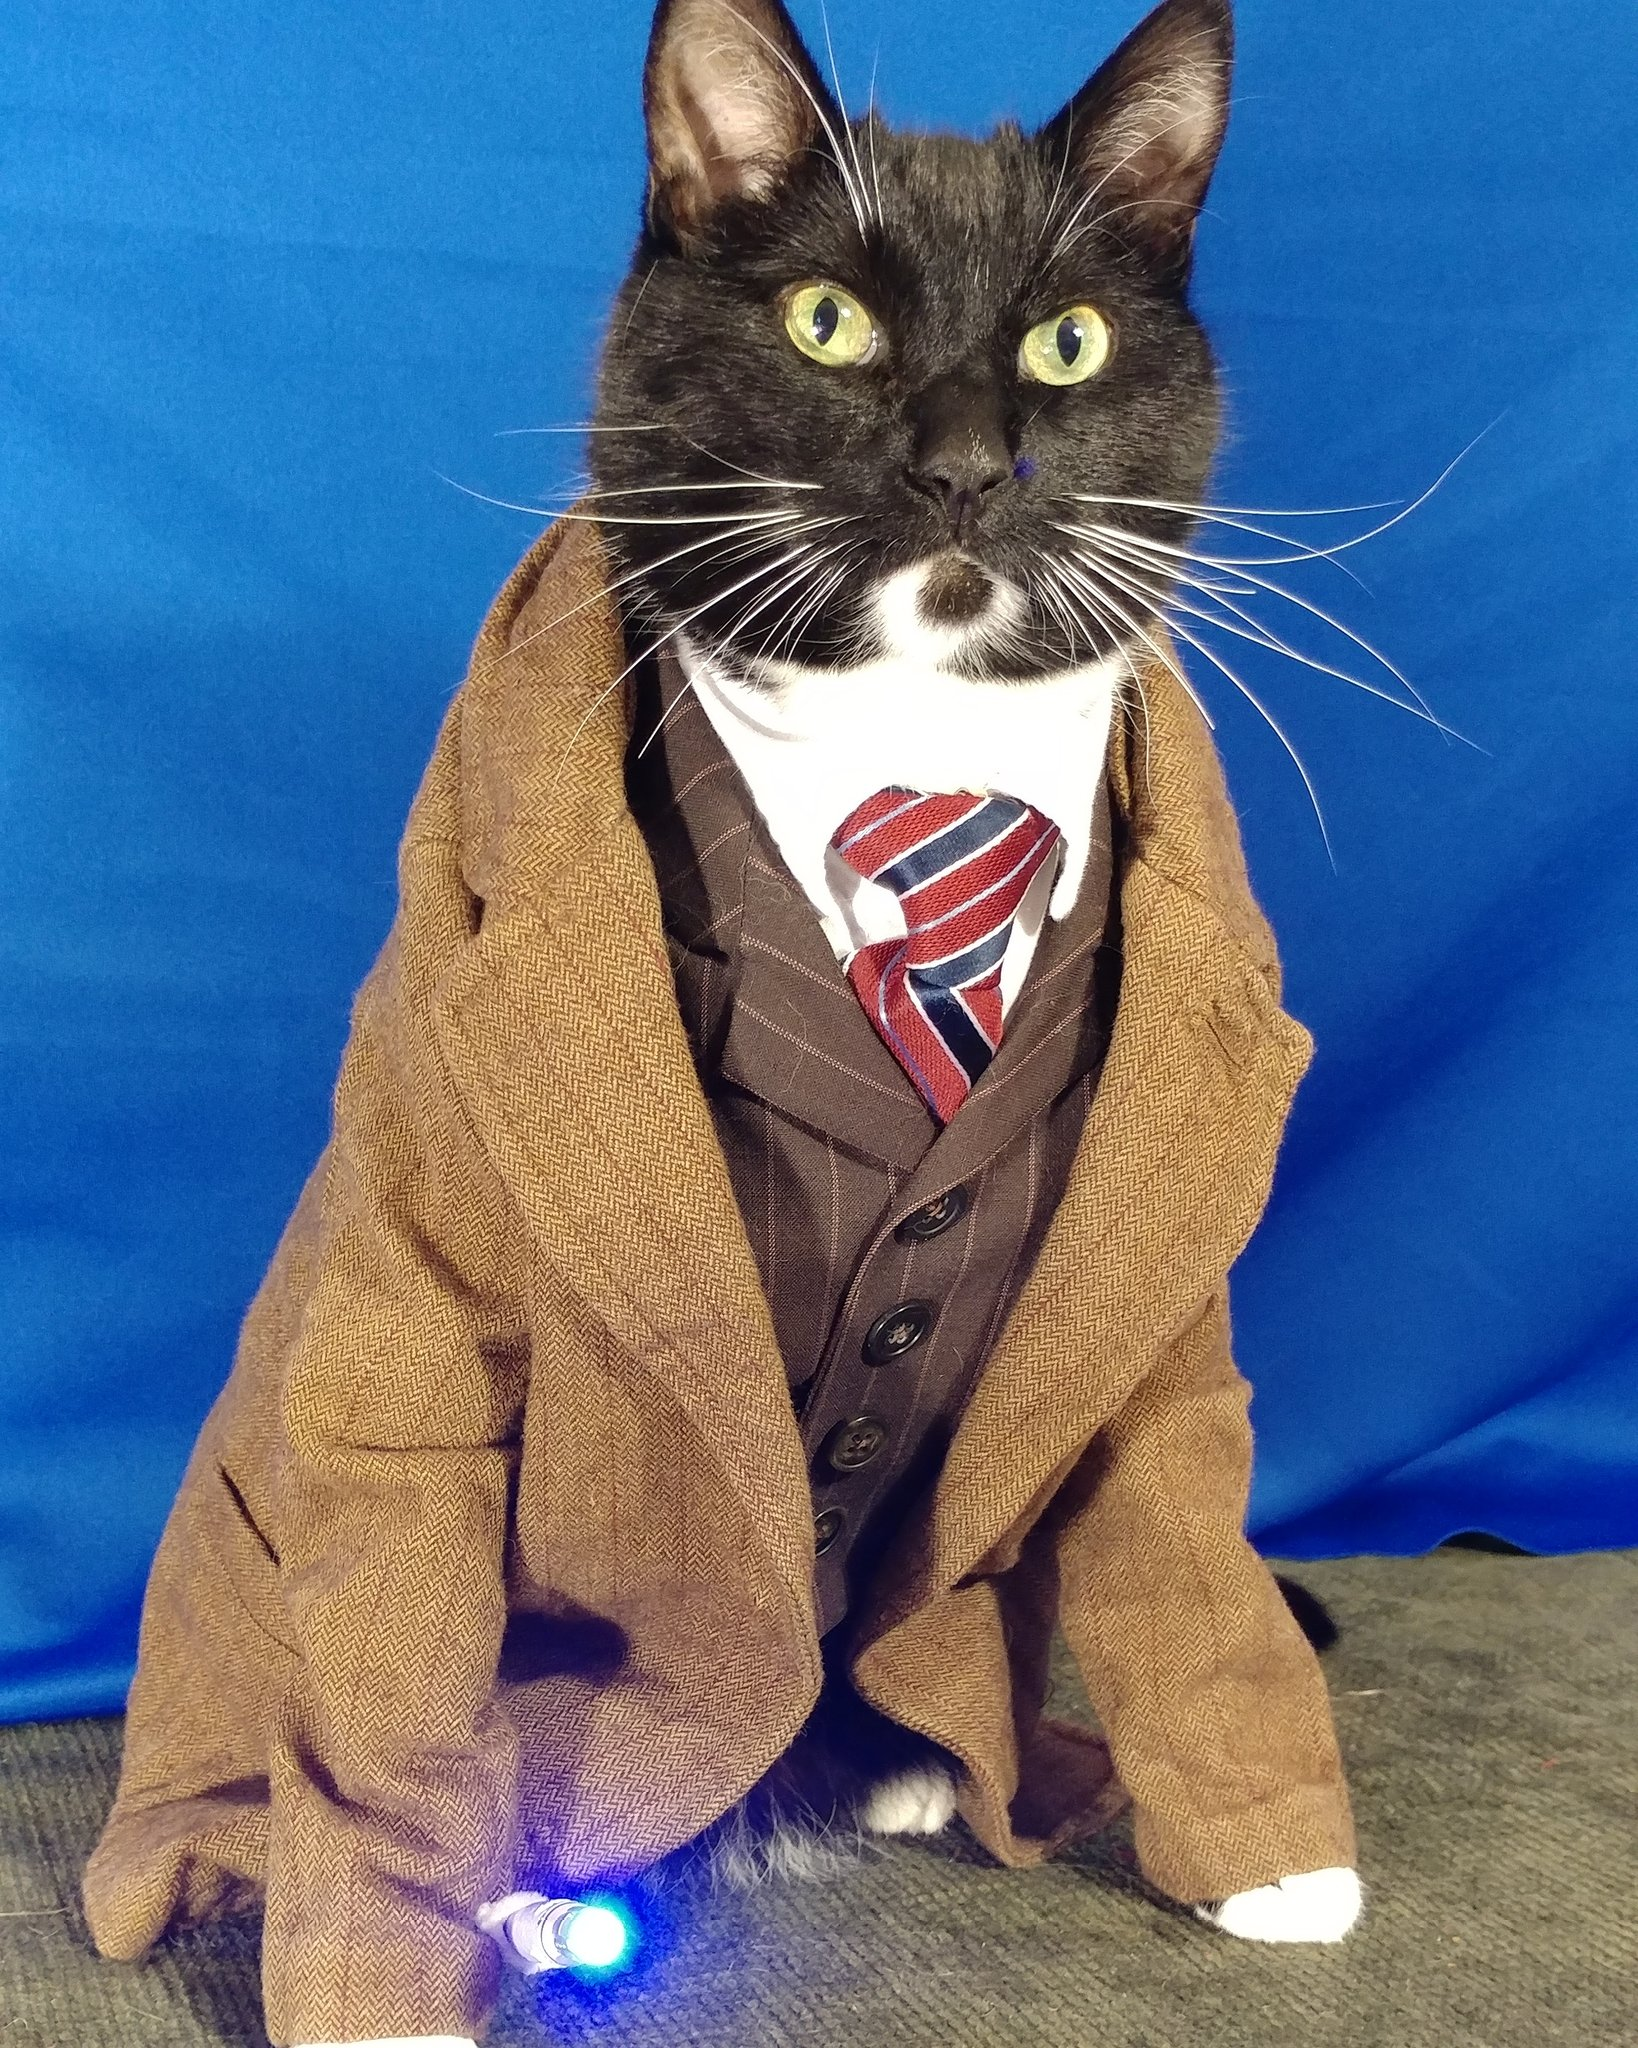 'Now, first things first. Be honest. How do I look?' ~ The Doct'purr  #DrWho #10thDoctor https://t.co/65k7FItObD